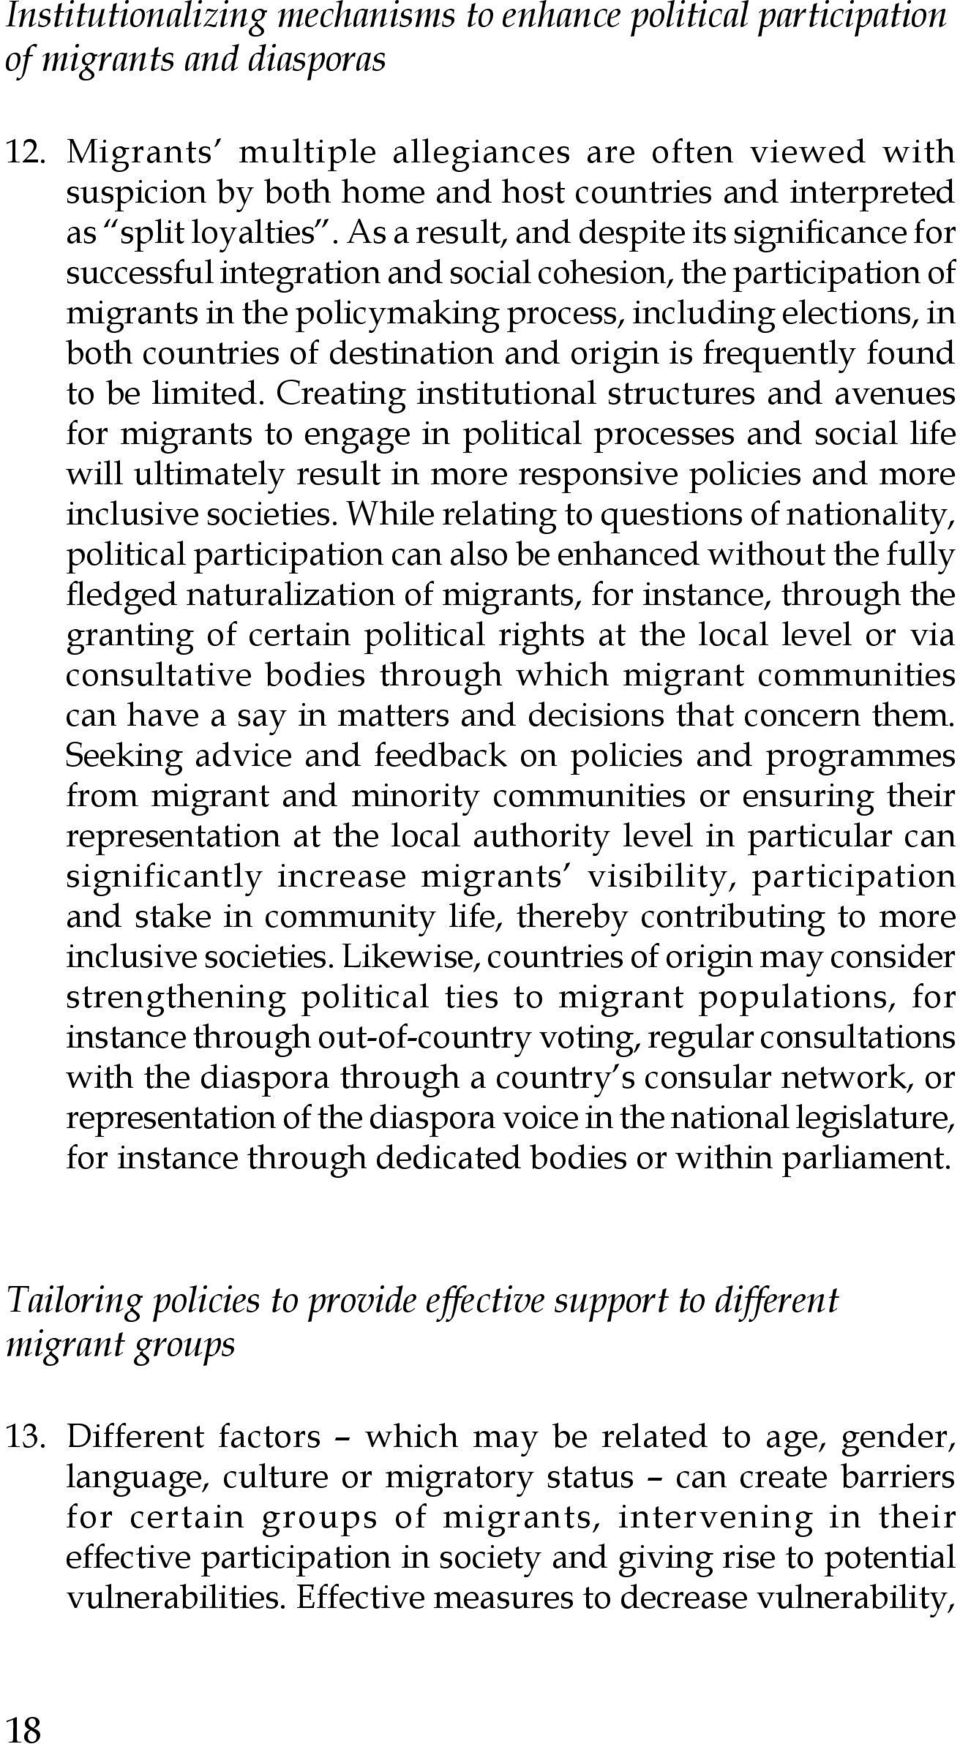 As a result, and despite its significance for successful integration and social cohesion, the participation of migrants in the policymaking process, including elections, in both countries of